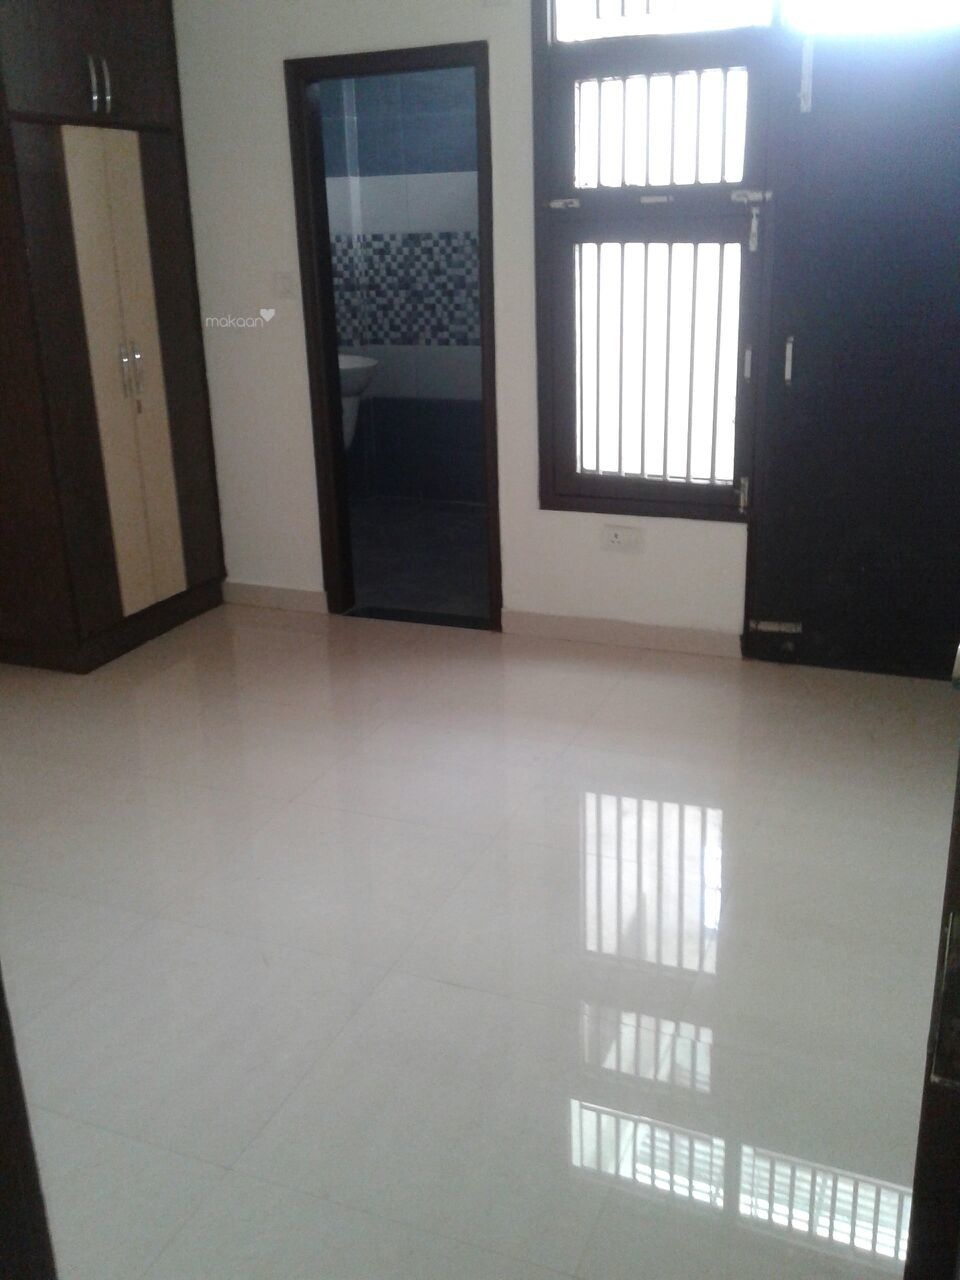 1400 sq ft 3BHK 3BHK+2T (1,400 sq ft) + Pooja Room Property By INVESTORS HOUSE PROPMART In Project, Sector 5 Vasundhara